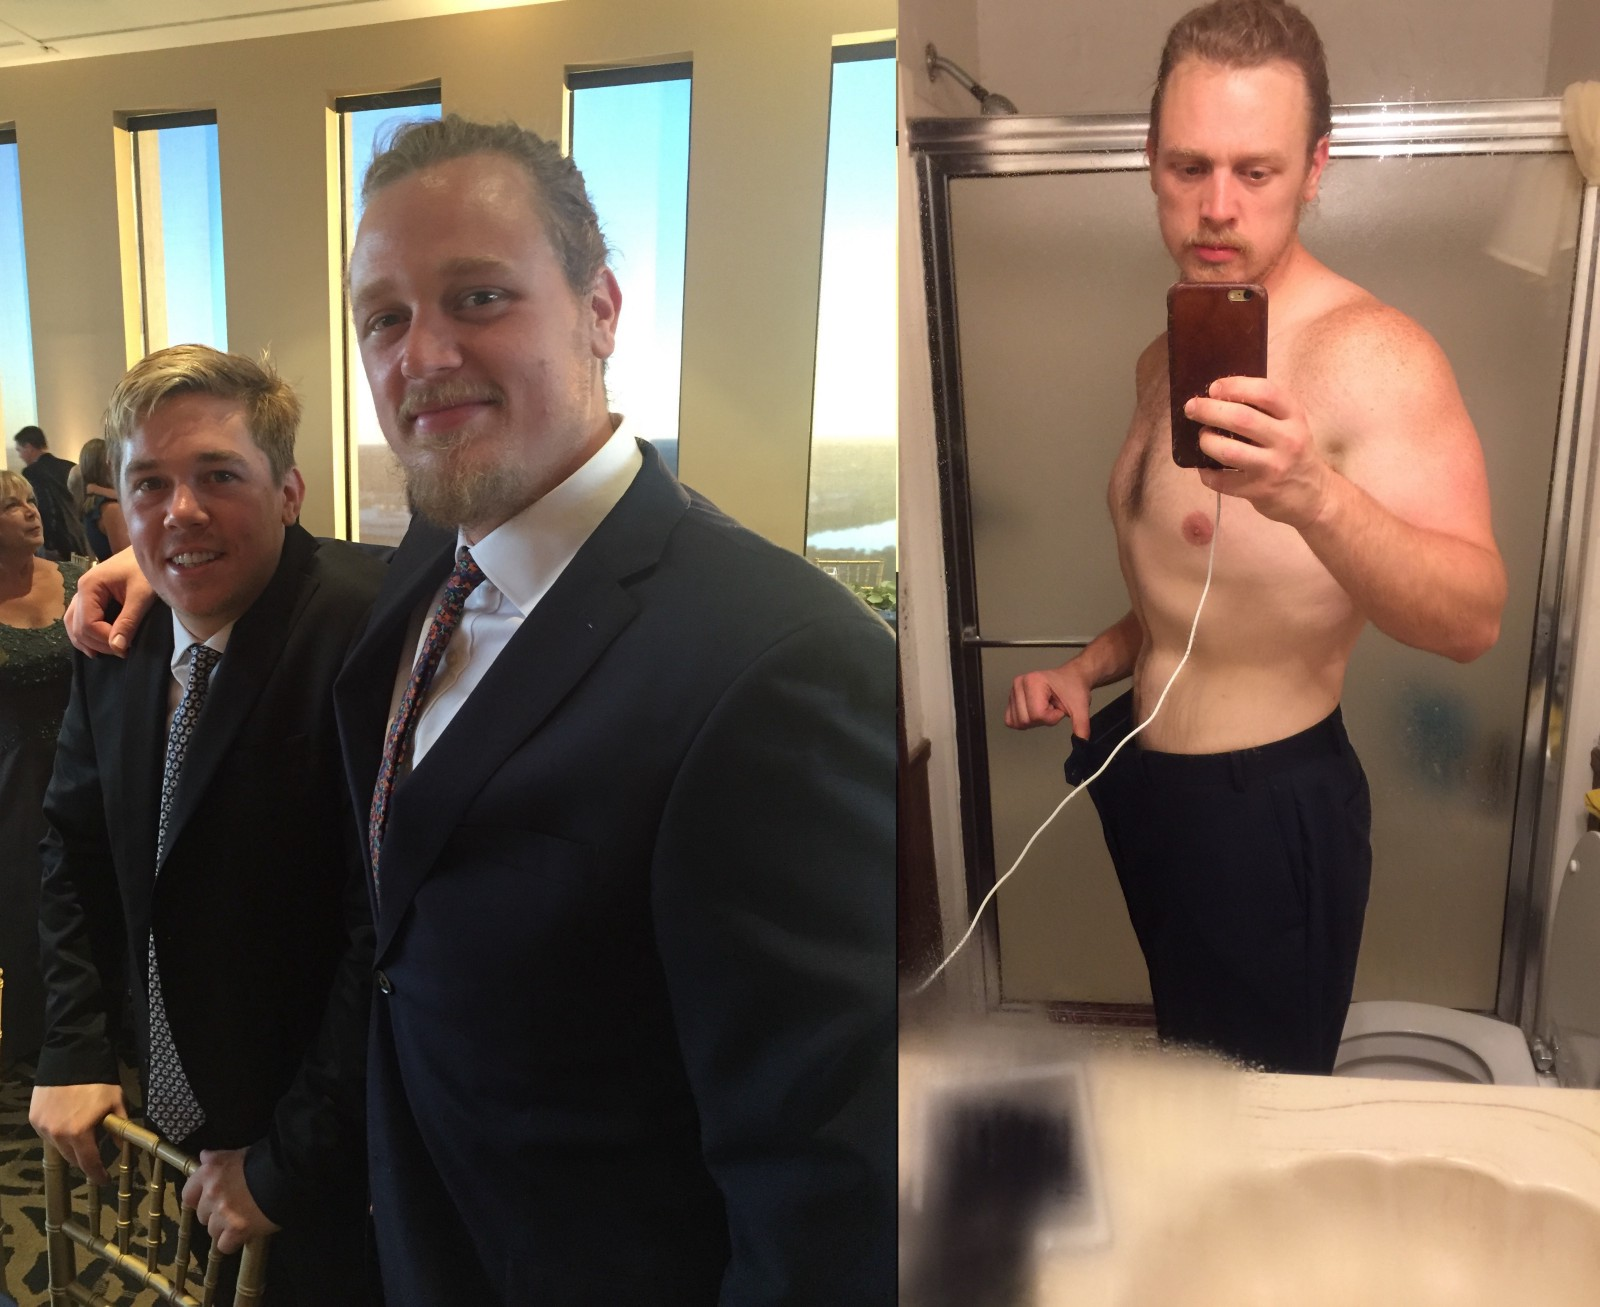 Left: At my friend Steve's wedding in September of '16 around 230-ish lbs.  Right: Same suit & pants in July of '17 at 200 lbs.